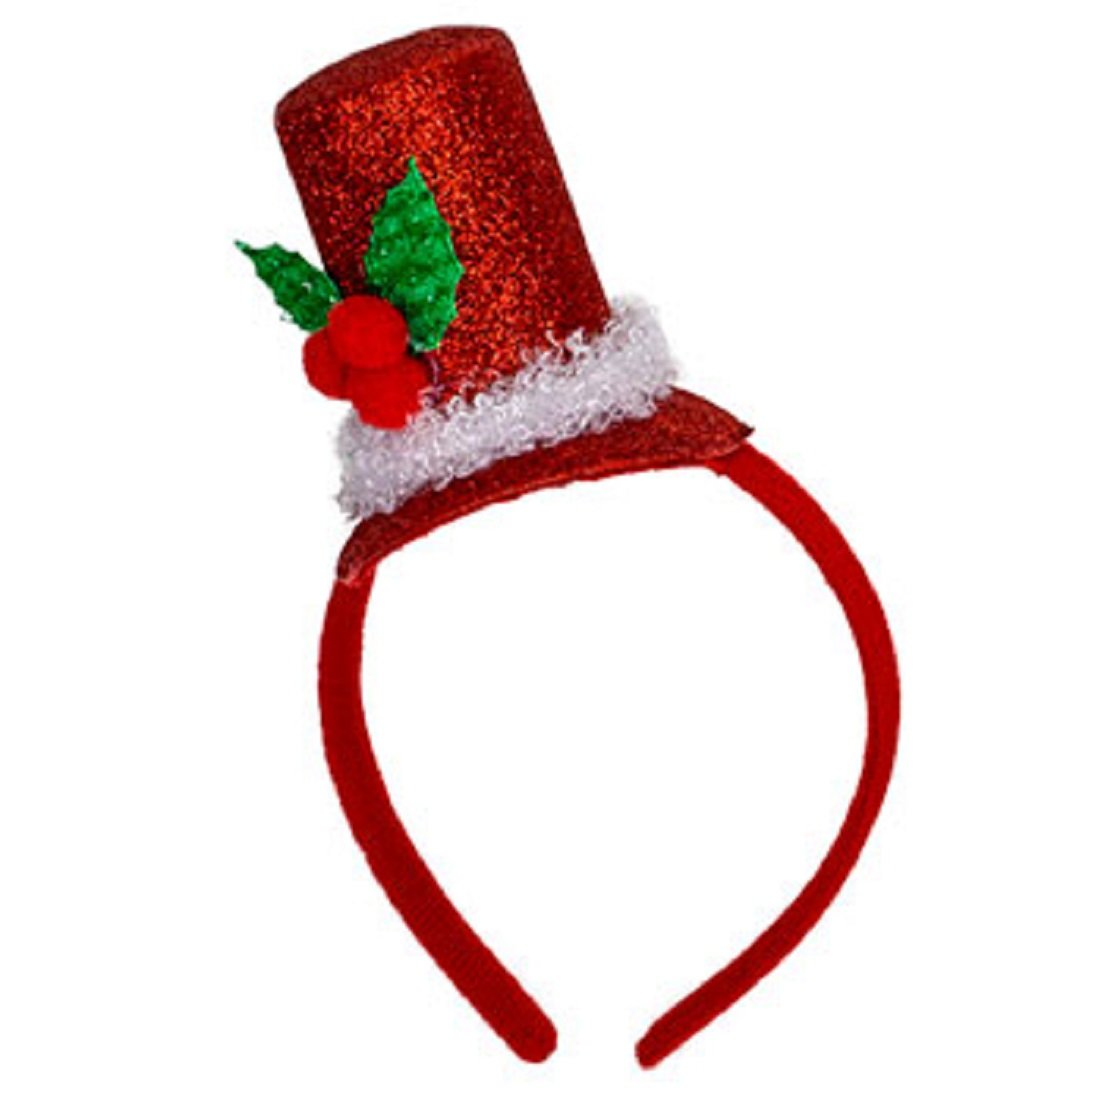 9535346e09e Amazon.com  Christmas House Mens Glittery Santa Top Hat Headband with Holly  - One size - 1 pkg.  Clothing